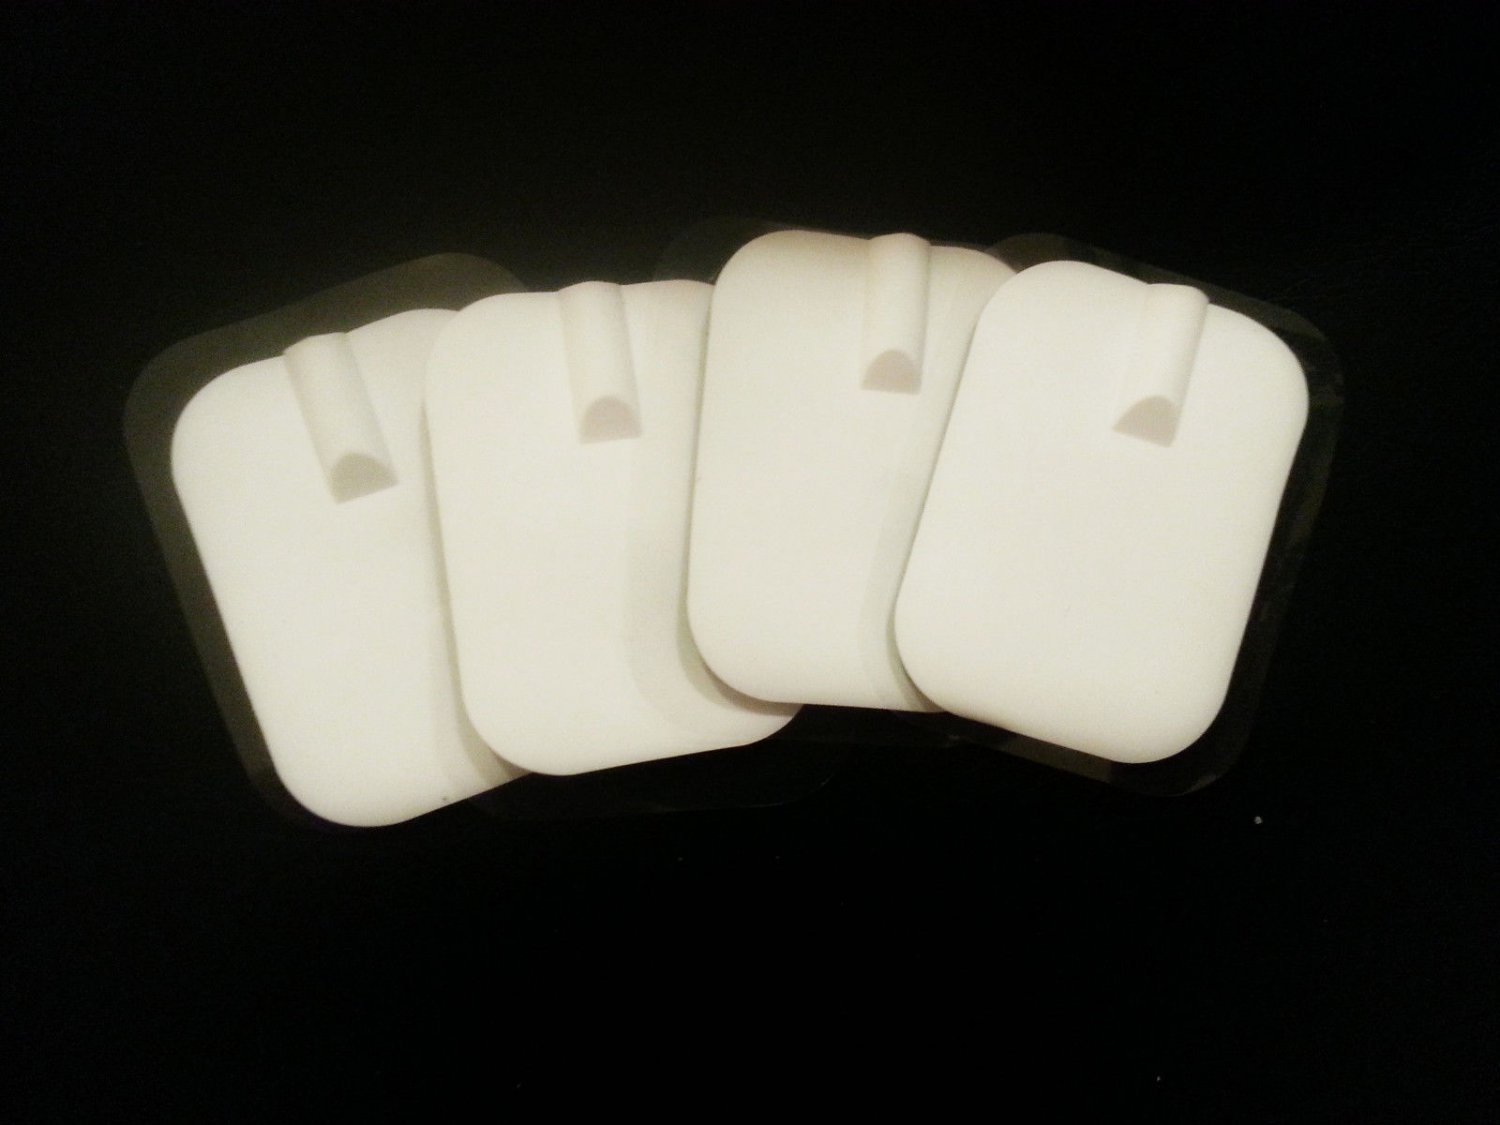 Electrode Pads Silicone Rubber (8) 4 Pairs 2mm Connection Massage Pads Reuse